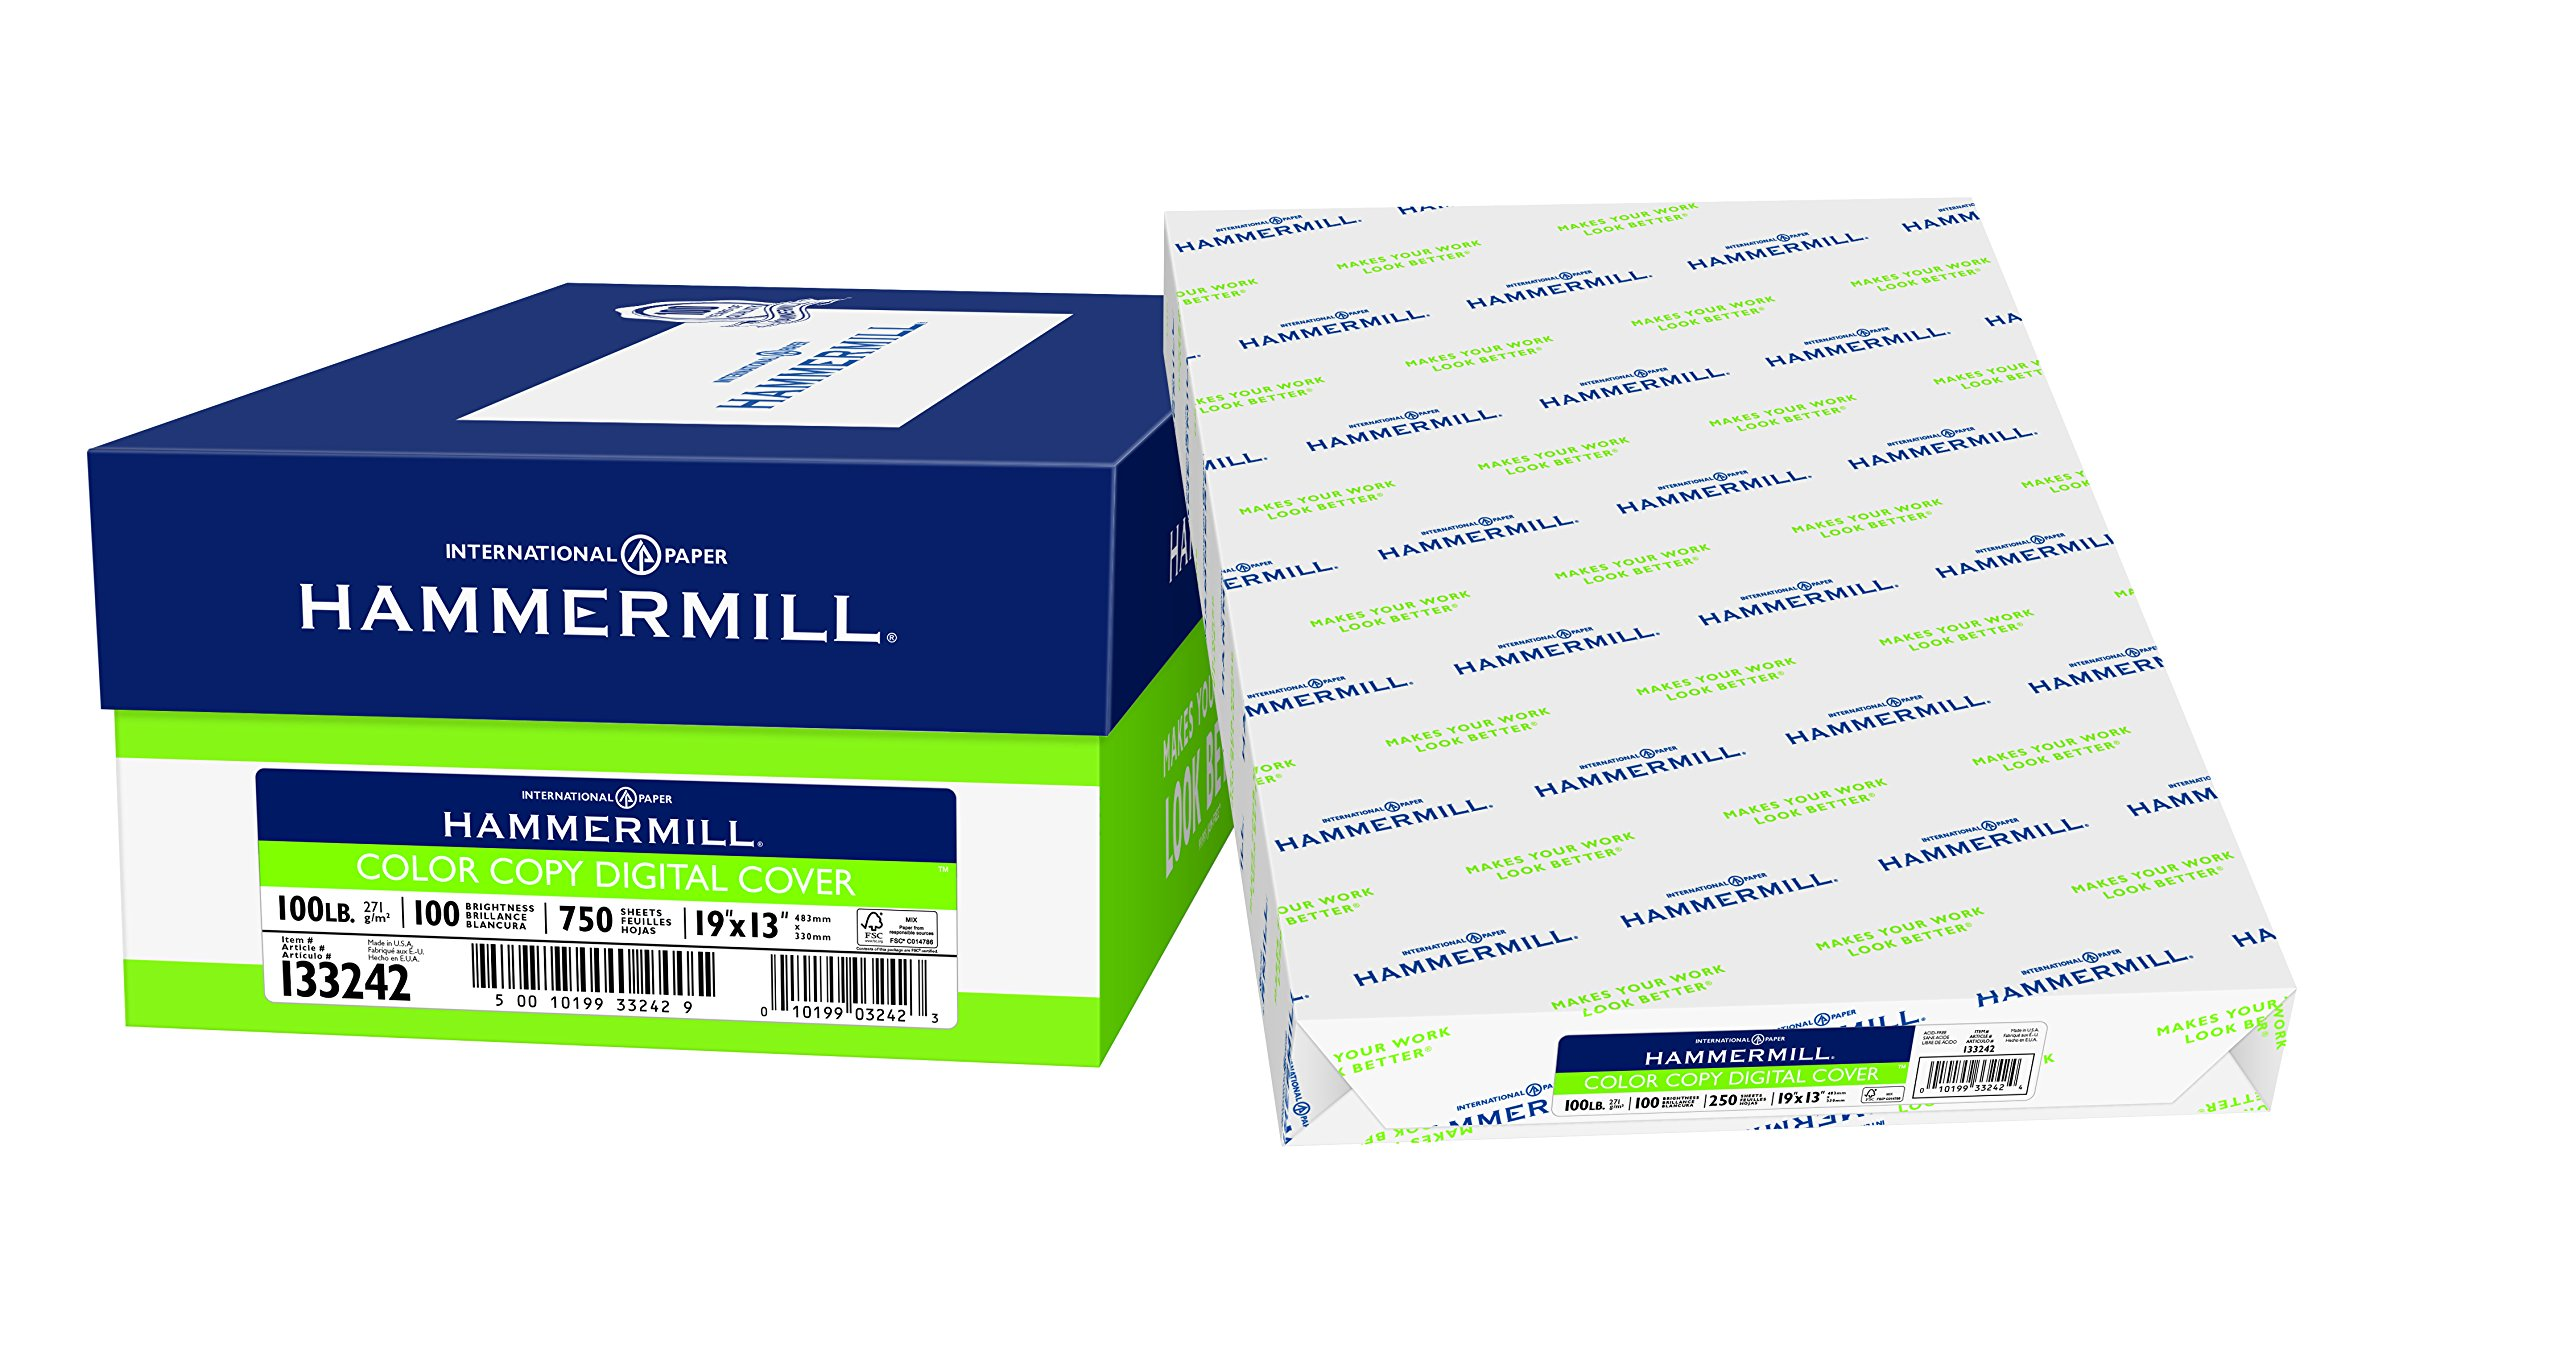 Hammermill Paper, Color Copy Digital Cover, 100lb, 19x13, 100 Bright, 750 Sheets / 3 Pack Case, (133242C), Made In The USA